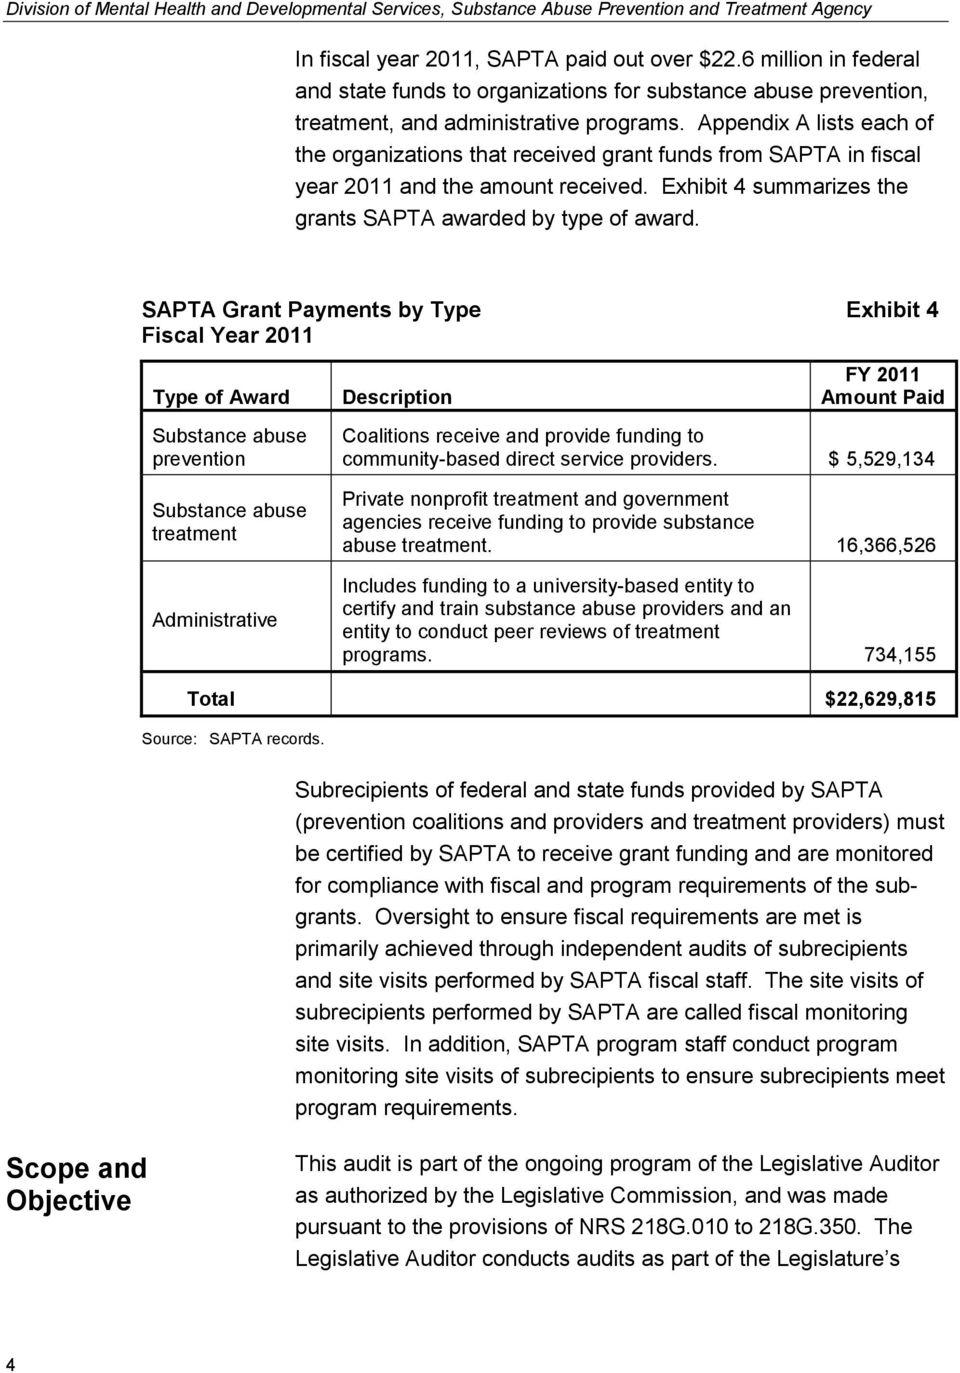 Appendix A lists each of the organizations that received grant funds from SAPTA in fiscal year 2011 and the amount received. Exhibit 4 summarizes the grants SAPTA awarded by type of award.